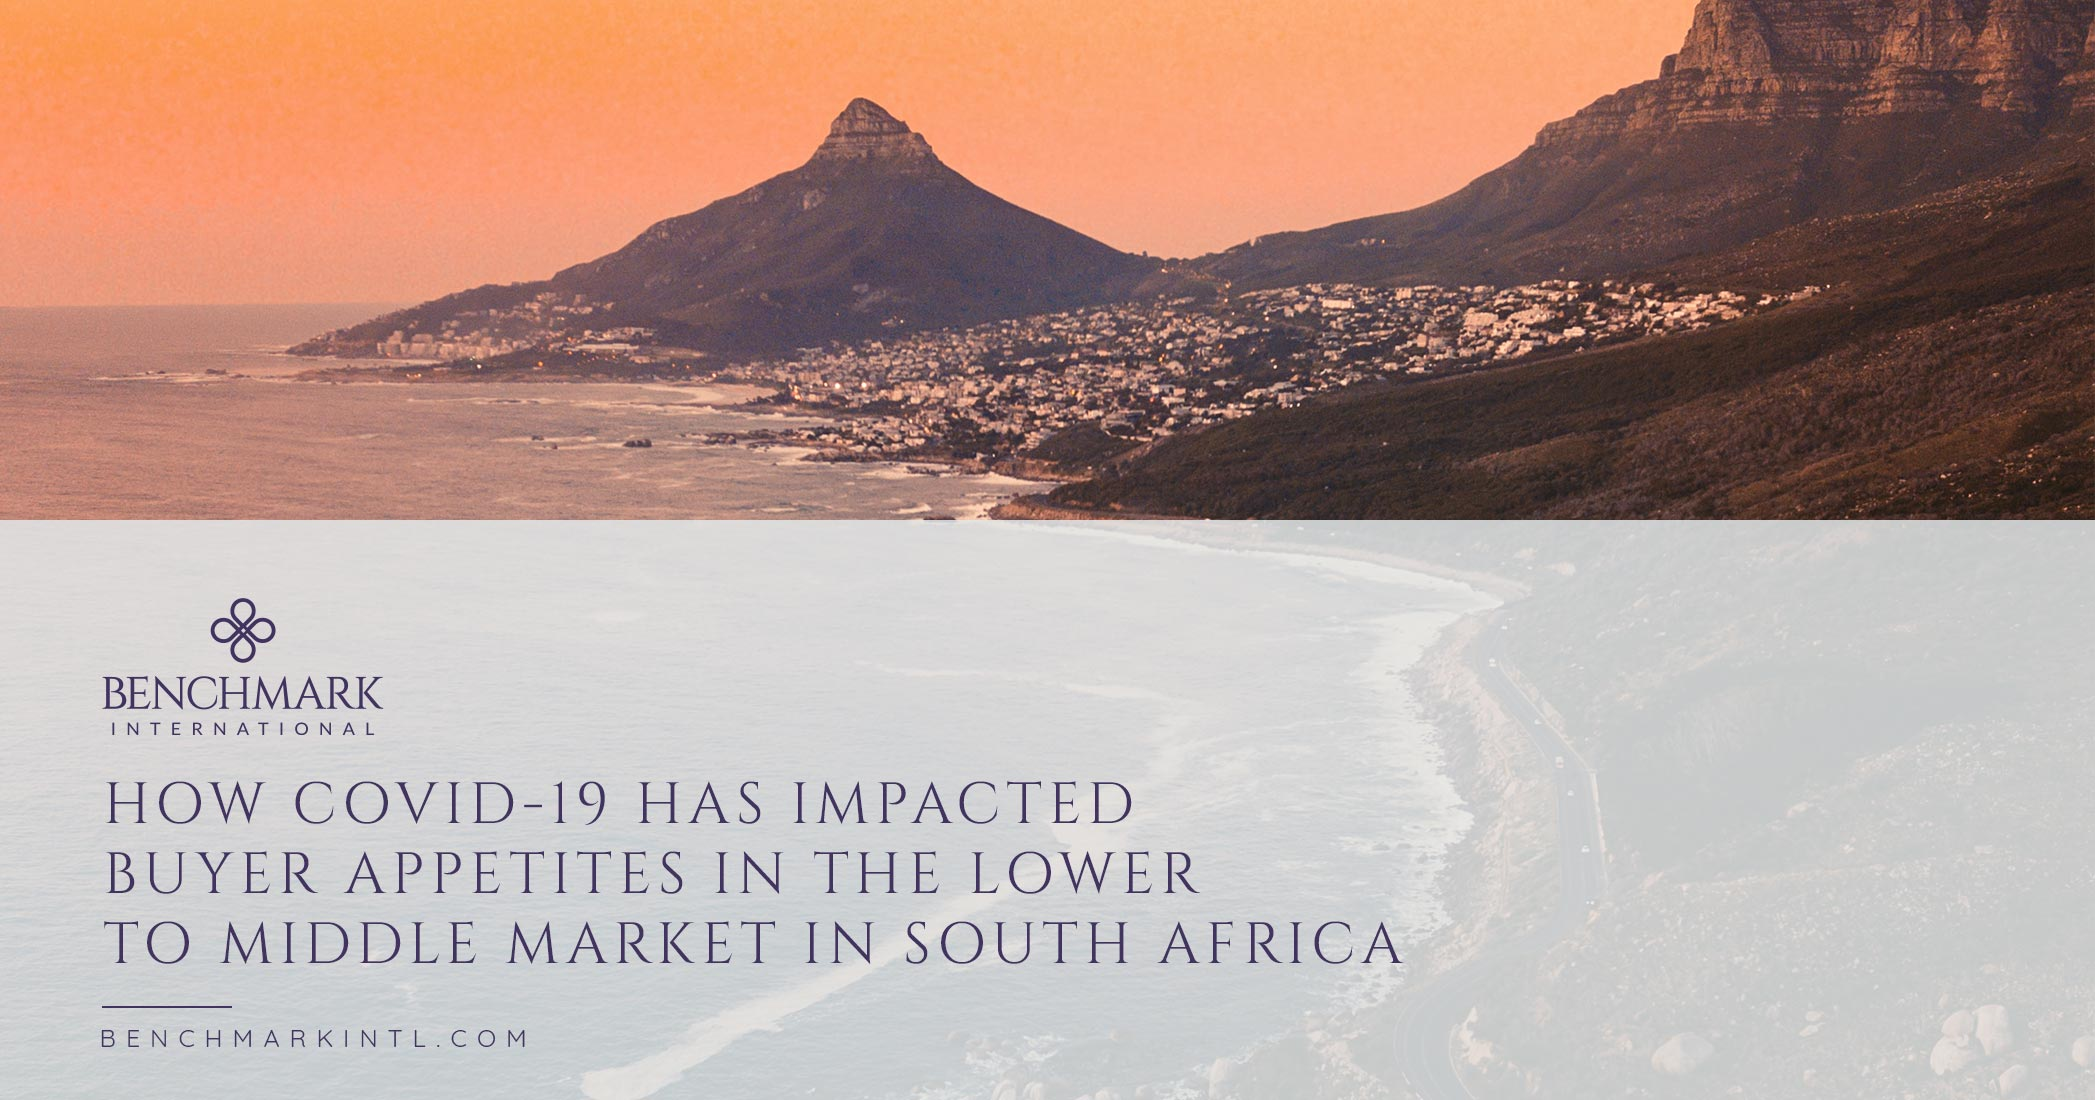 How COVID-19 Has Impacted Buyer Appetites In The Lower To Middle Market in South Africa